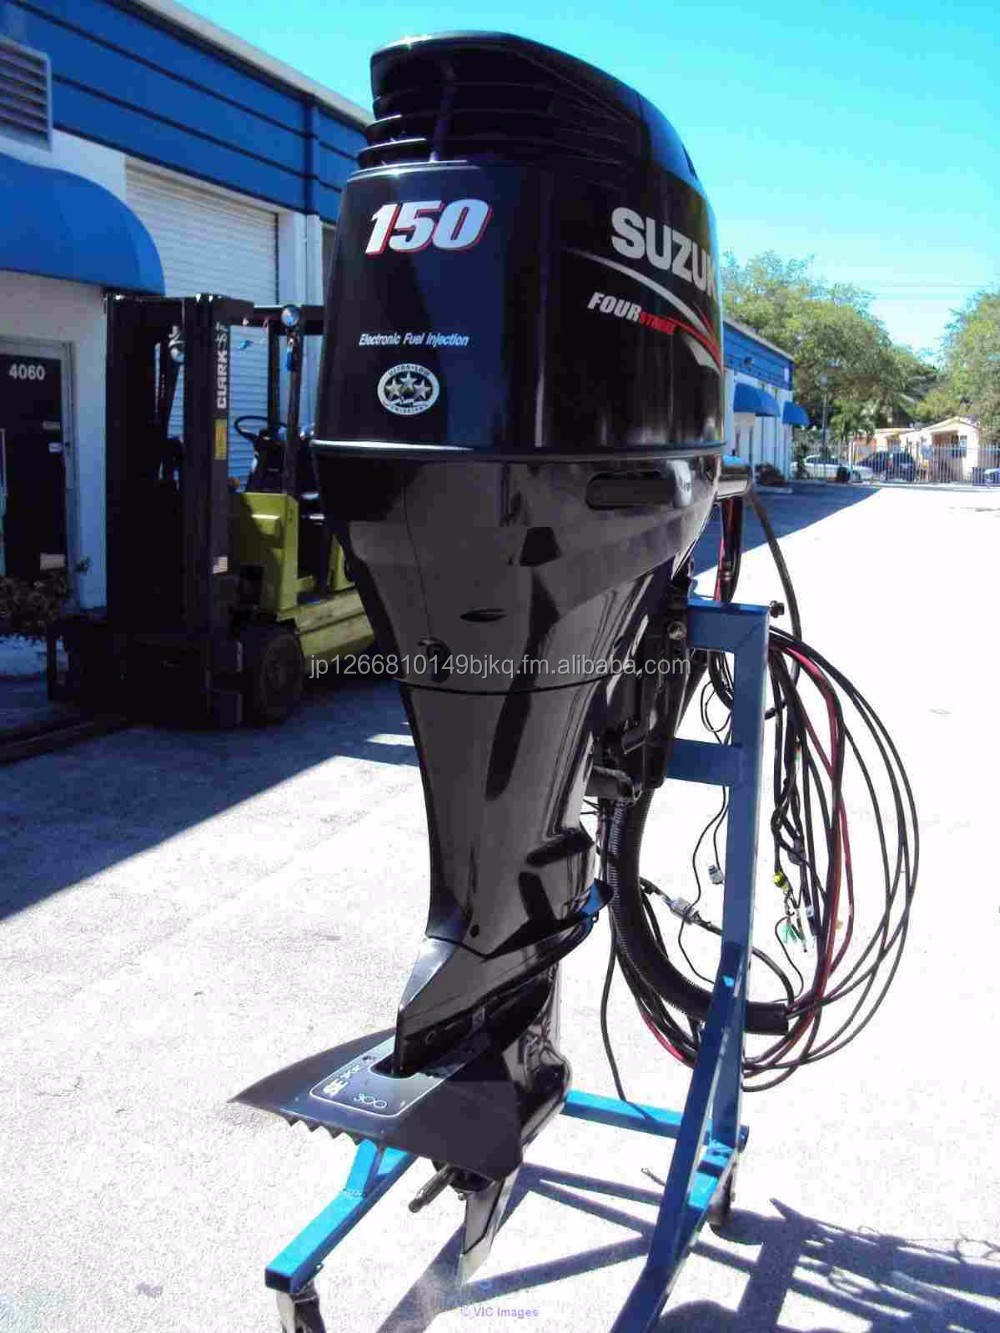 suzuki outboard motors, suzuki outboard motors suppliers and